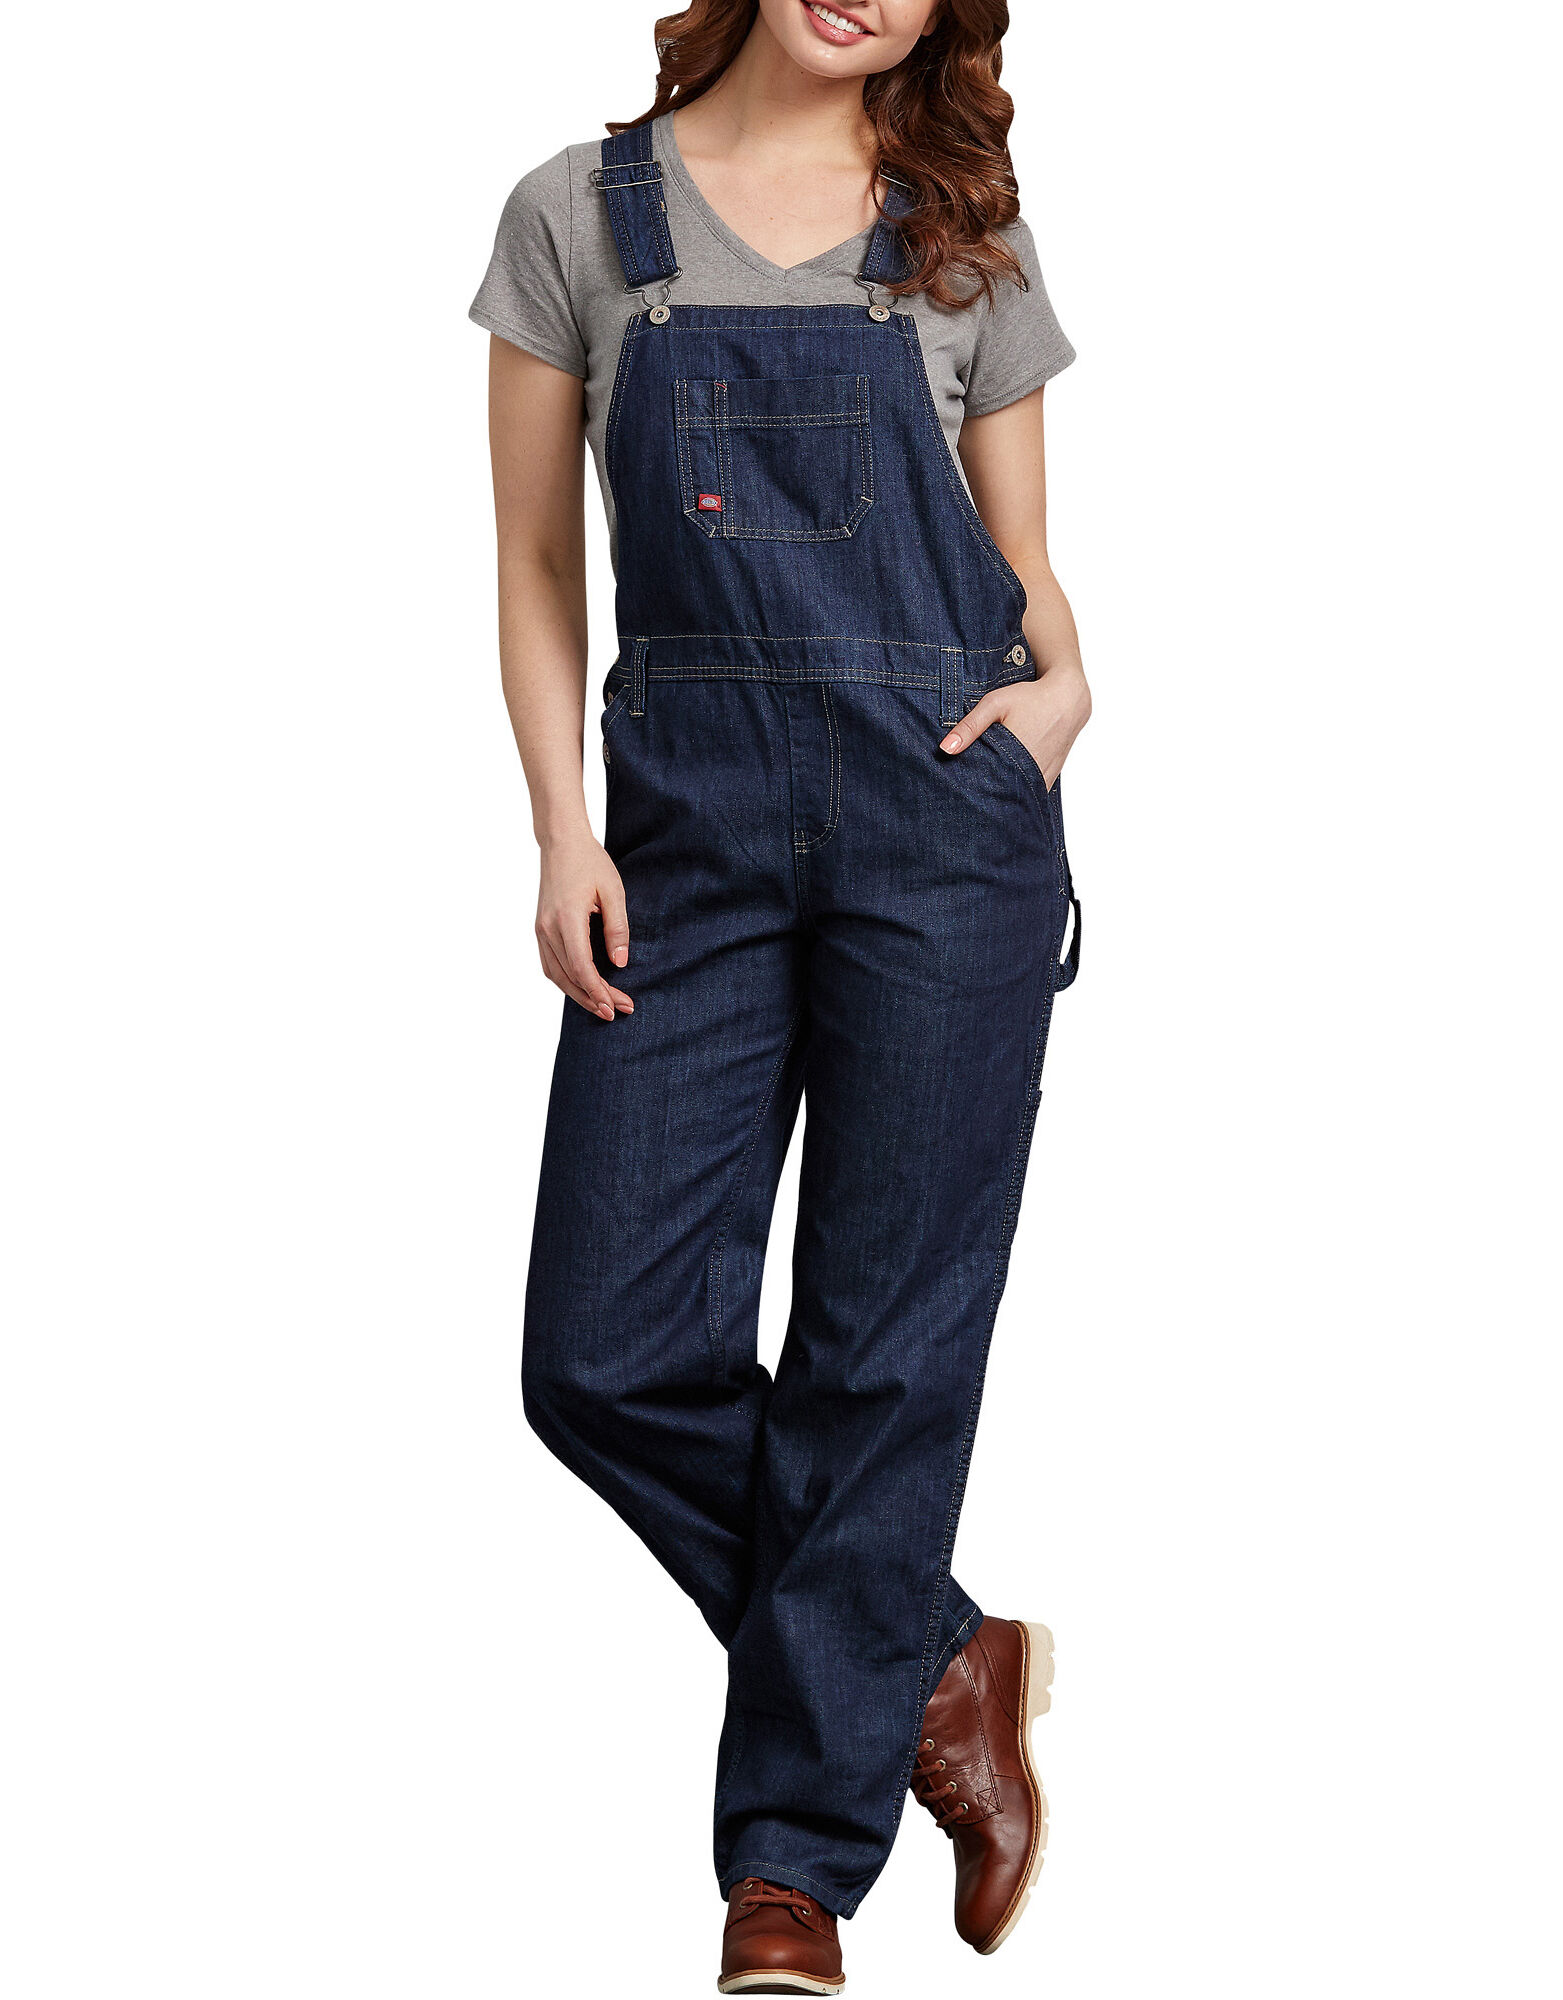 Free shipping BOTH ways on womens overalls, from our vast selection of styles. Fast delivery, and 24/7/ real-person service with a smile. Click or call